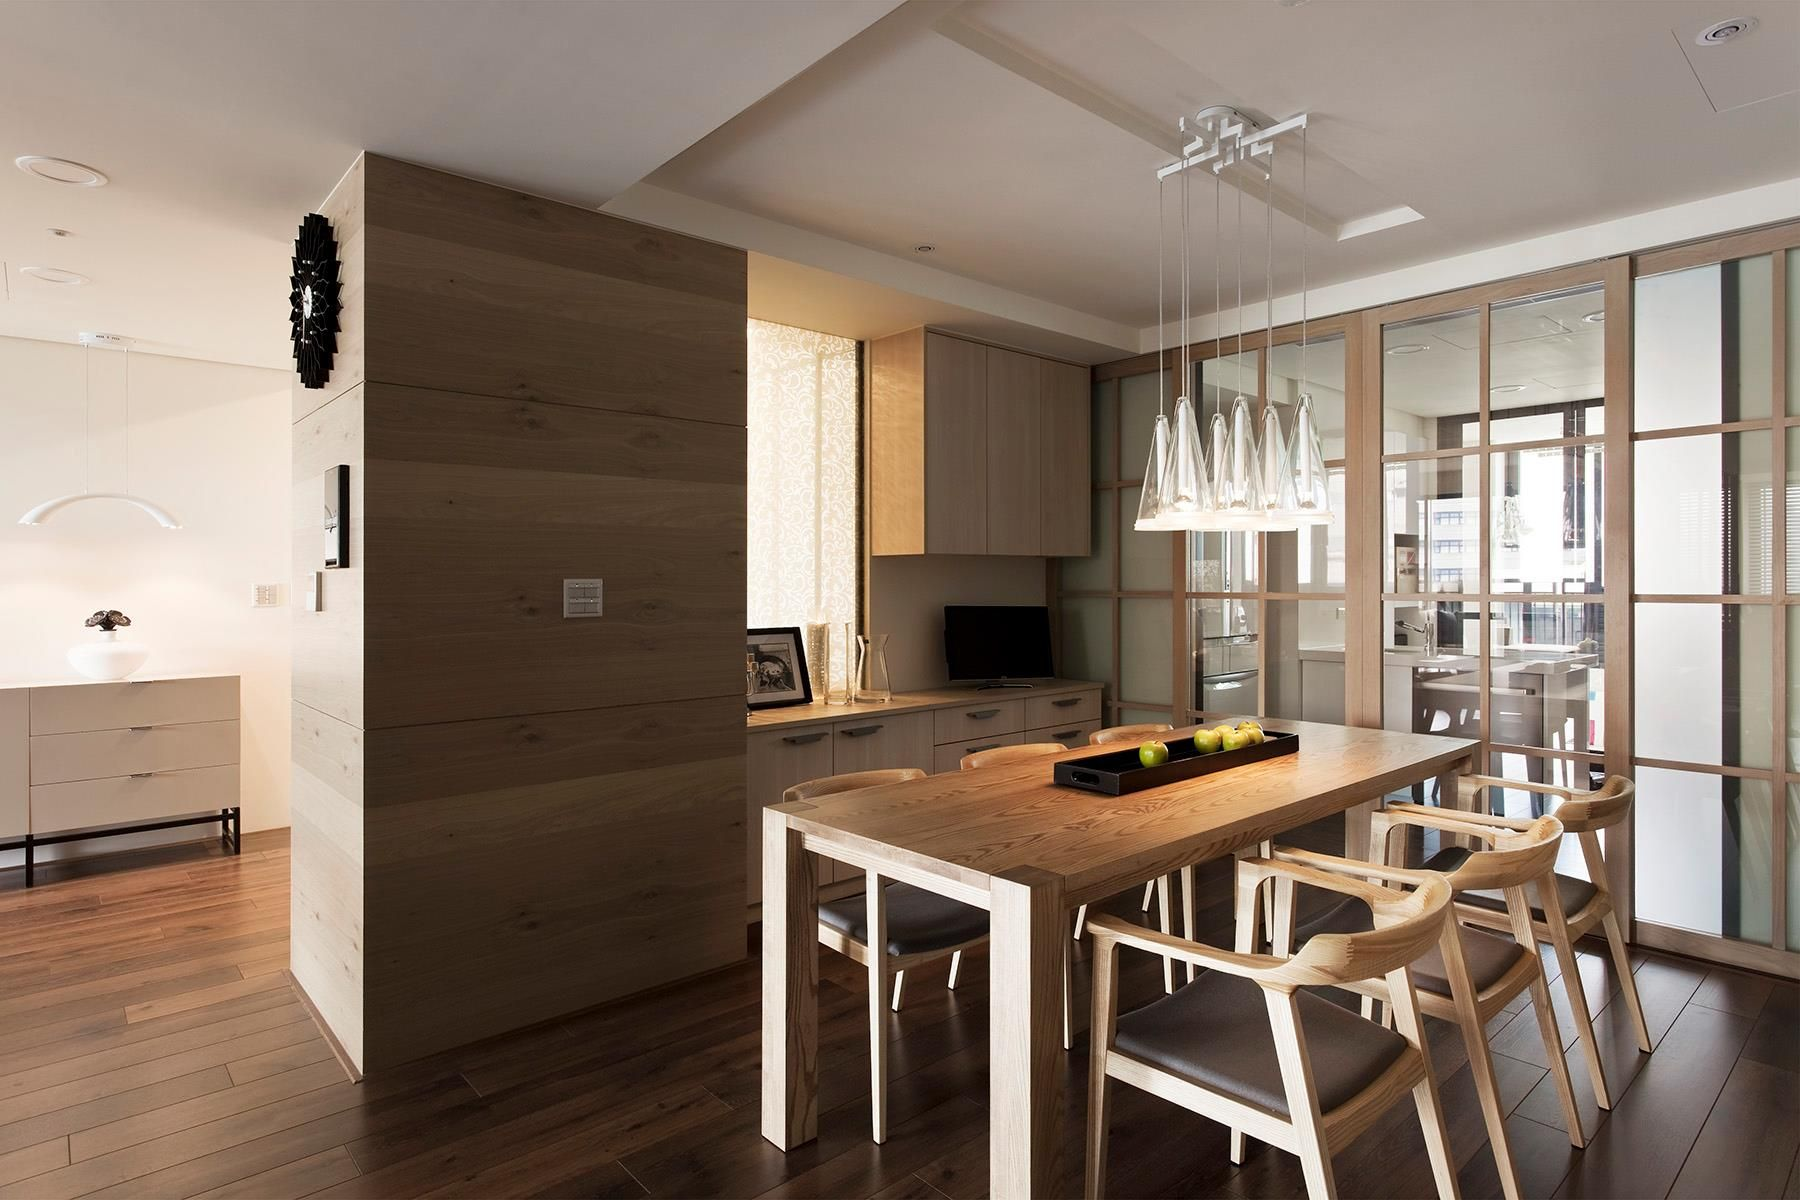 Marvelous contemporary dining room with classic kitchen plus great wooden furniture table for 6 chair